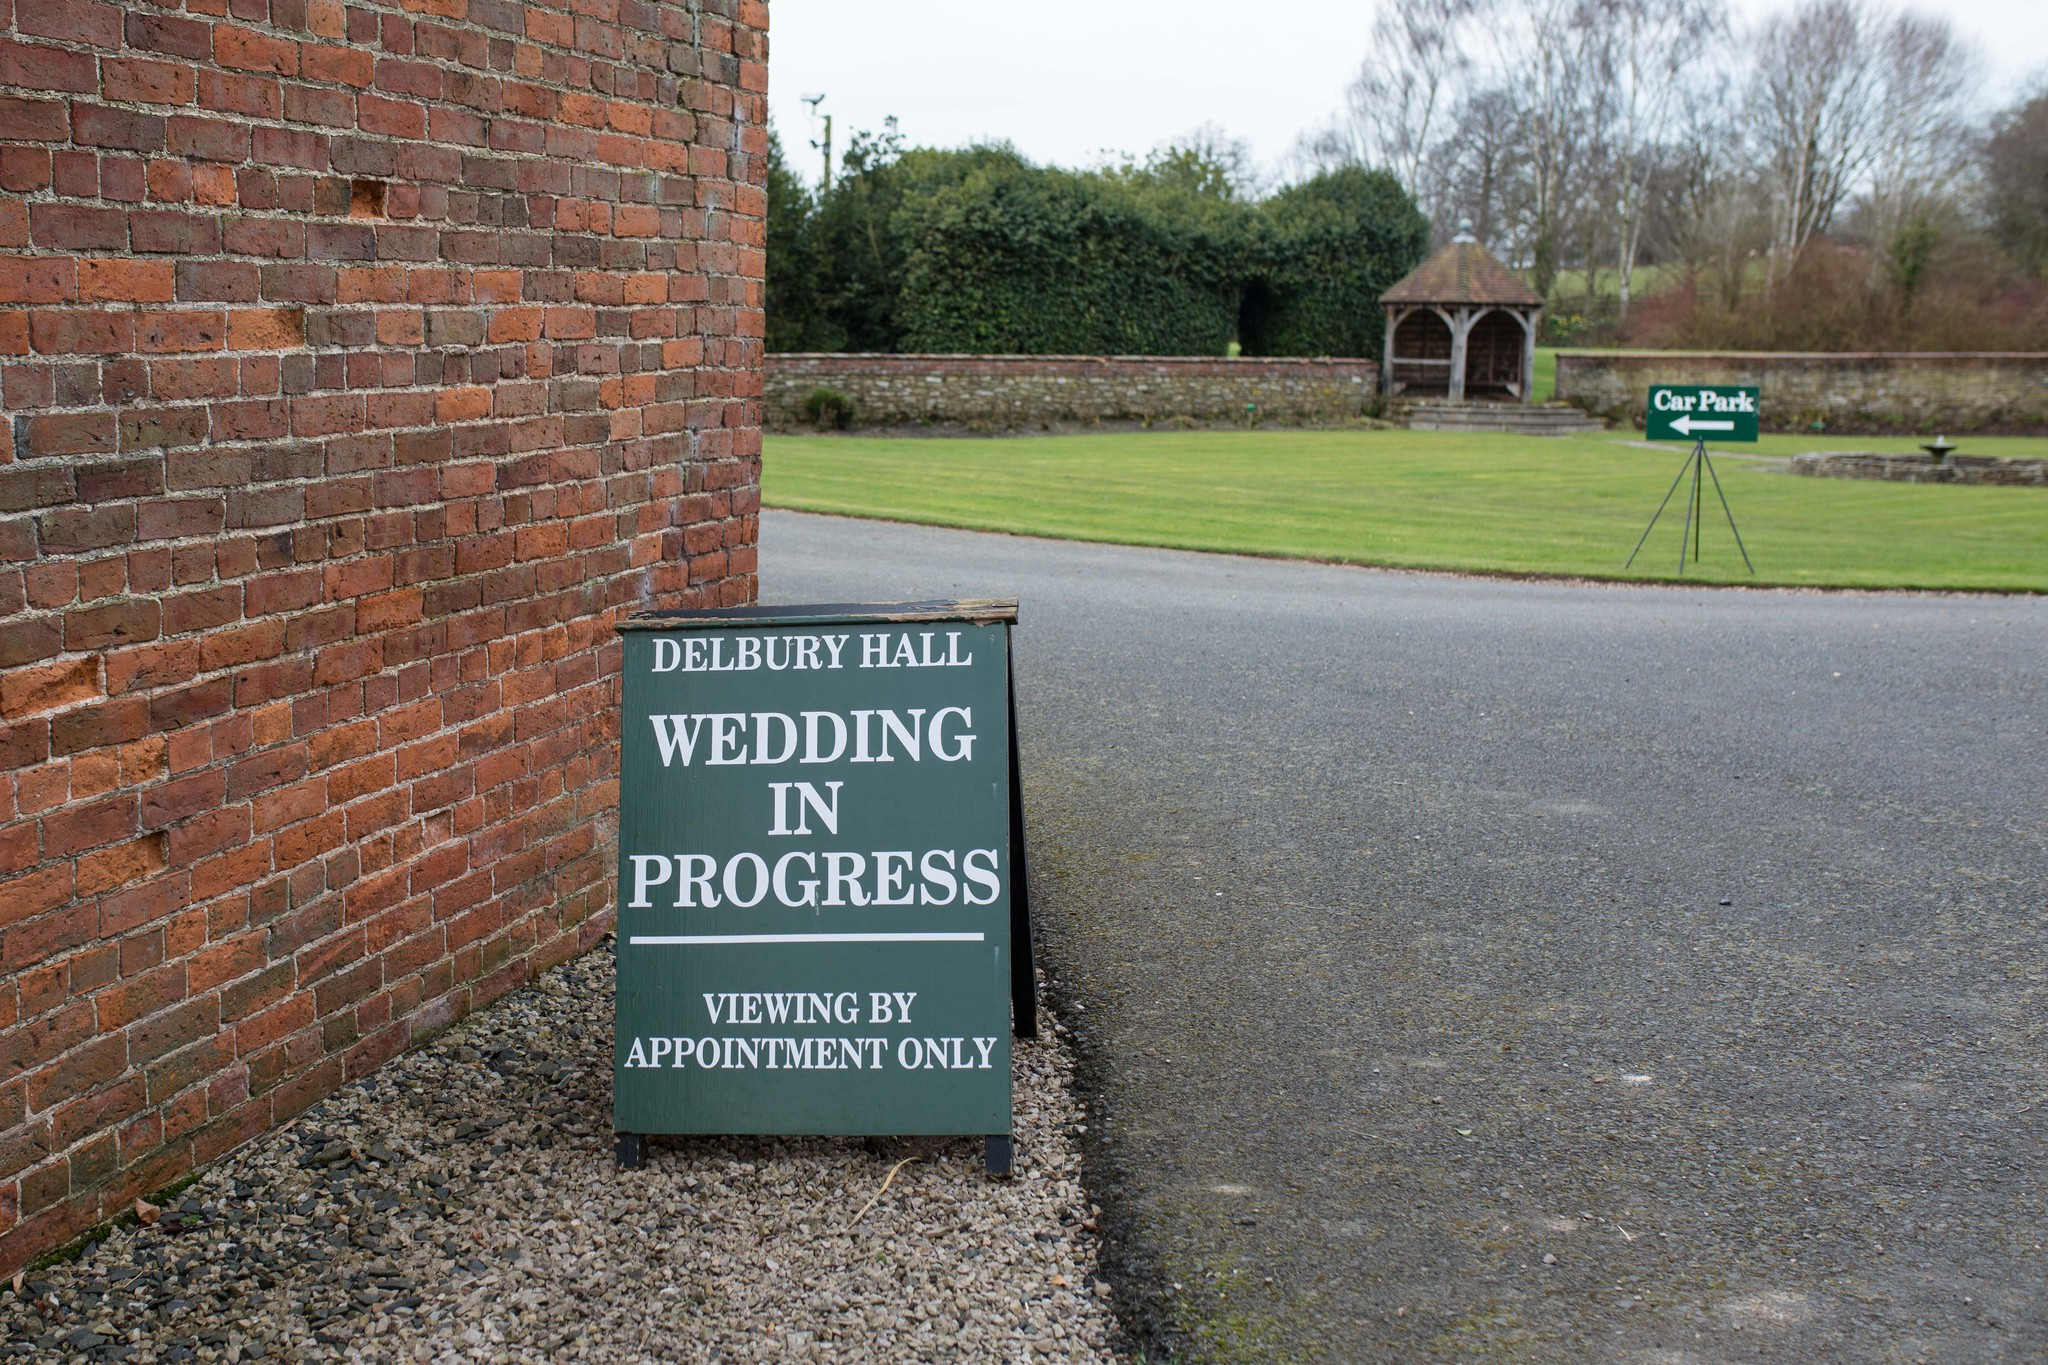 Delbury Hall Wedding in progress A board sign Spring wedding